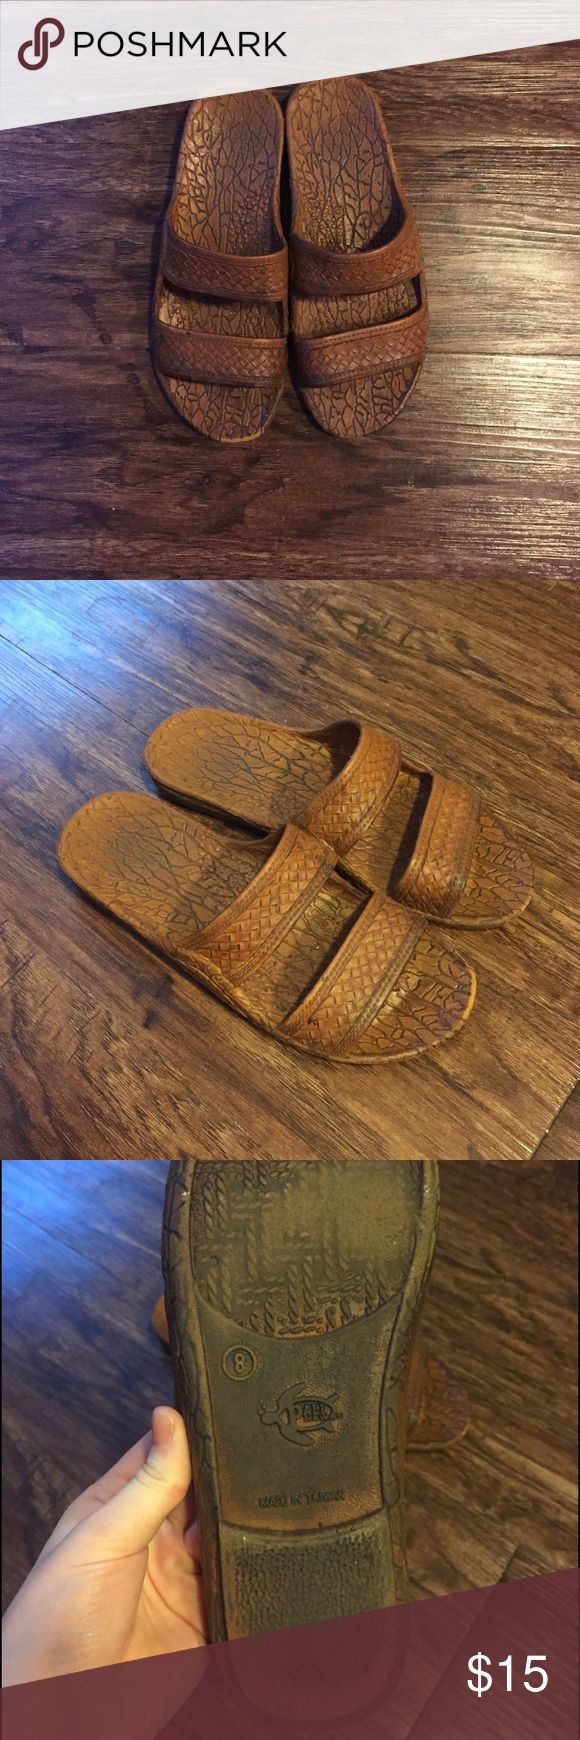 Jesus Sandals 🙏🏻 Slight wear as shown - Fit slightly small for an 8, I wear a 7.5 and they were perfect - Very cute for the beach or casual summer shoes - Not Madewell!! Madewell Shoes Sandals